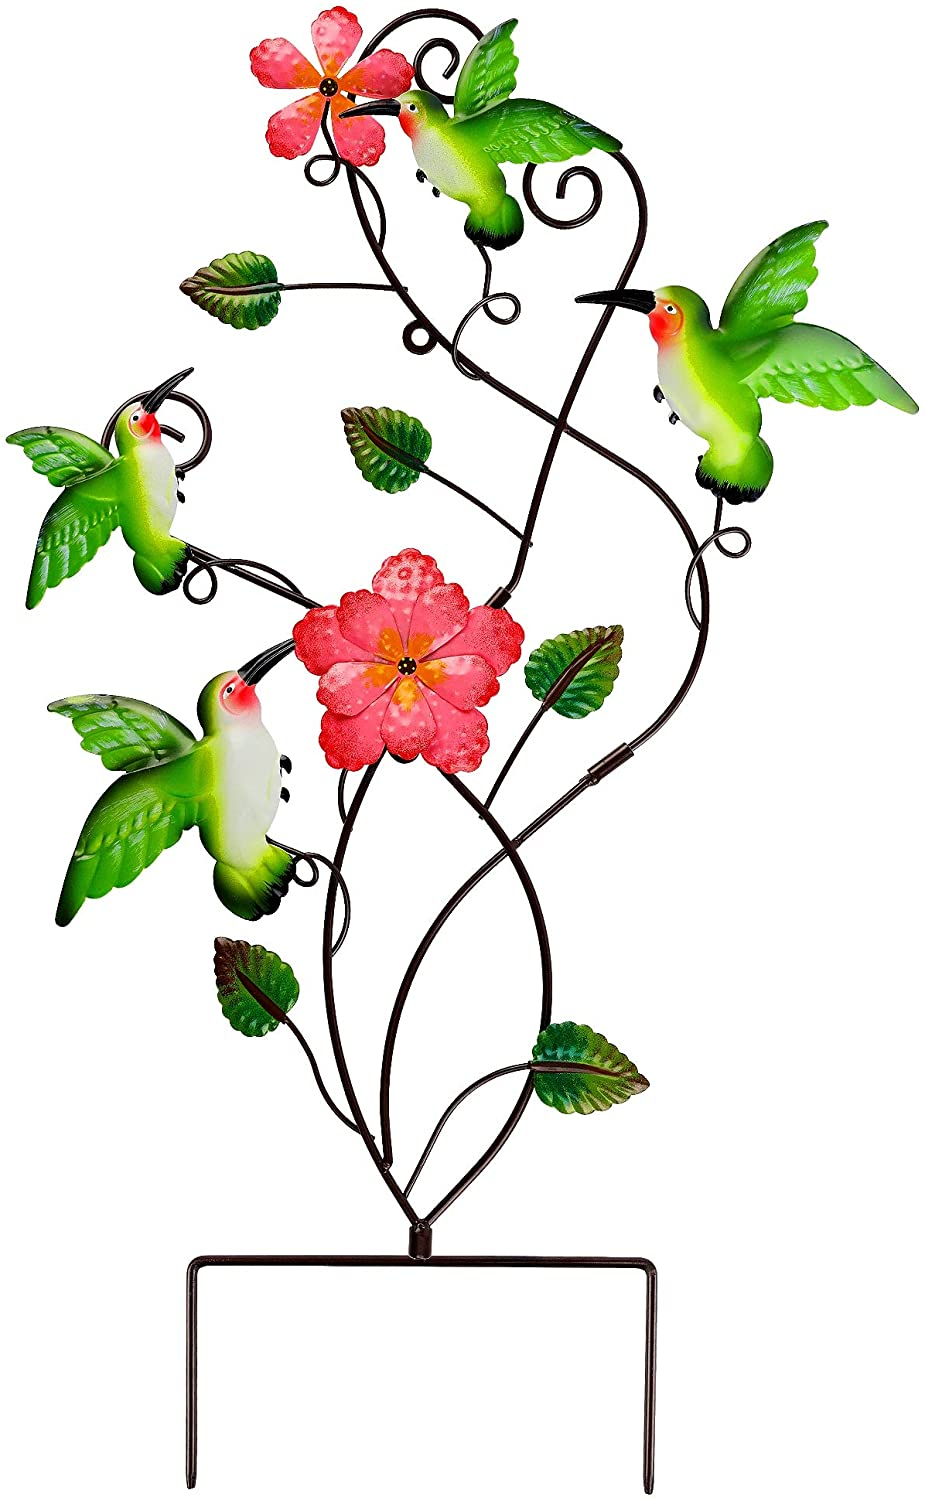 Juegoal 28 Inch Hummingbirds Garden Stake Decor, Colorful Look & Personalities Flowers Metal Wall Art Spring Decoration, Yard Outdoor Lawn Pathway Patio Ornaments